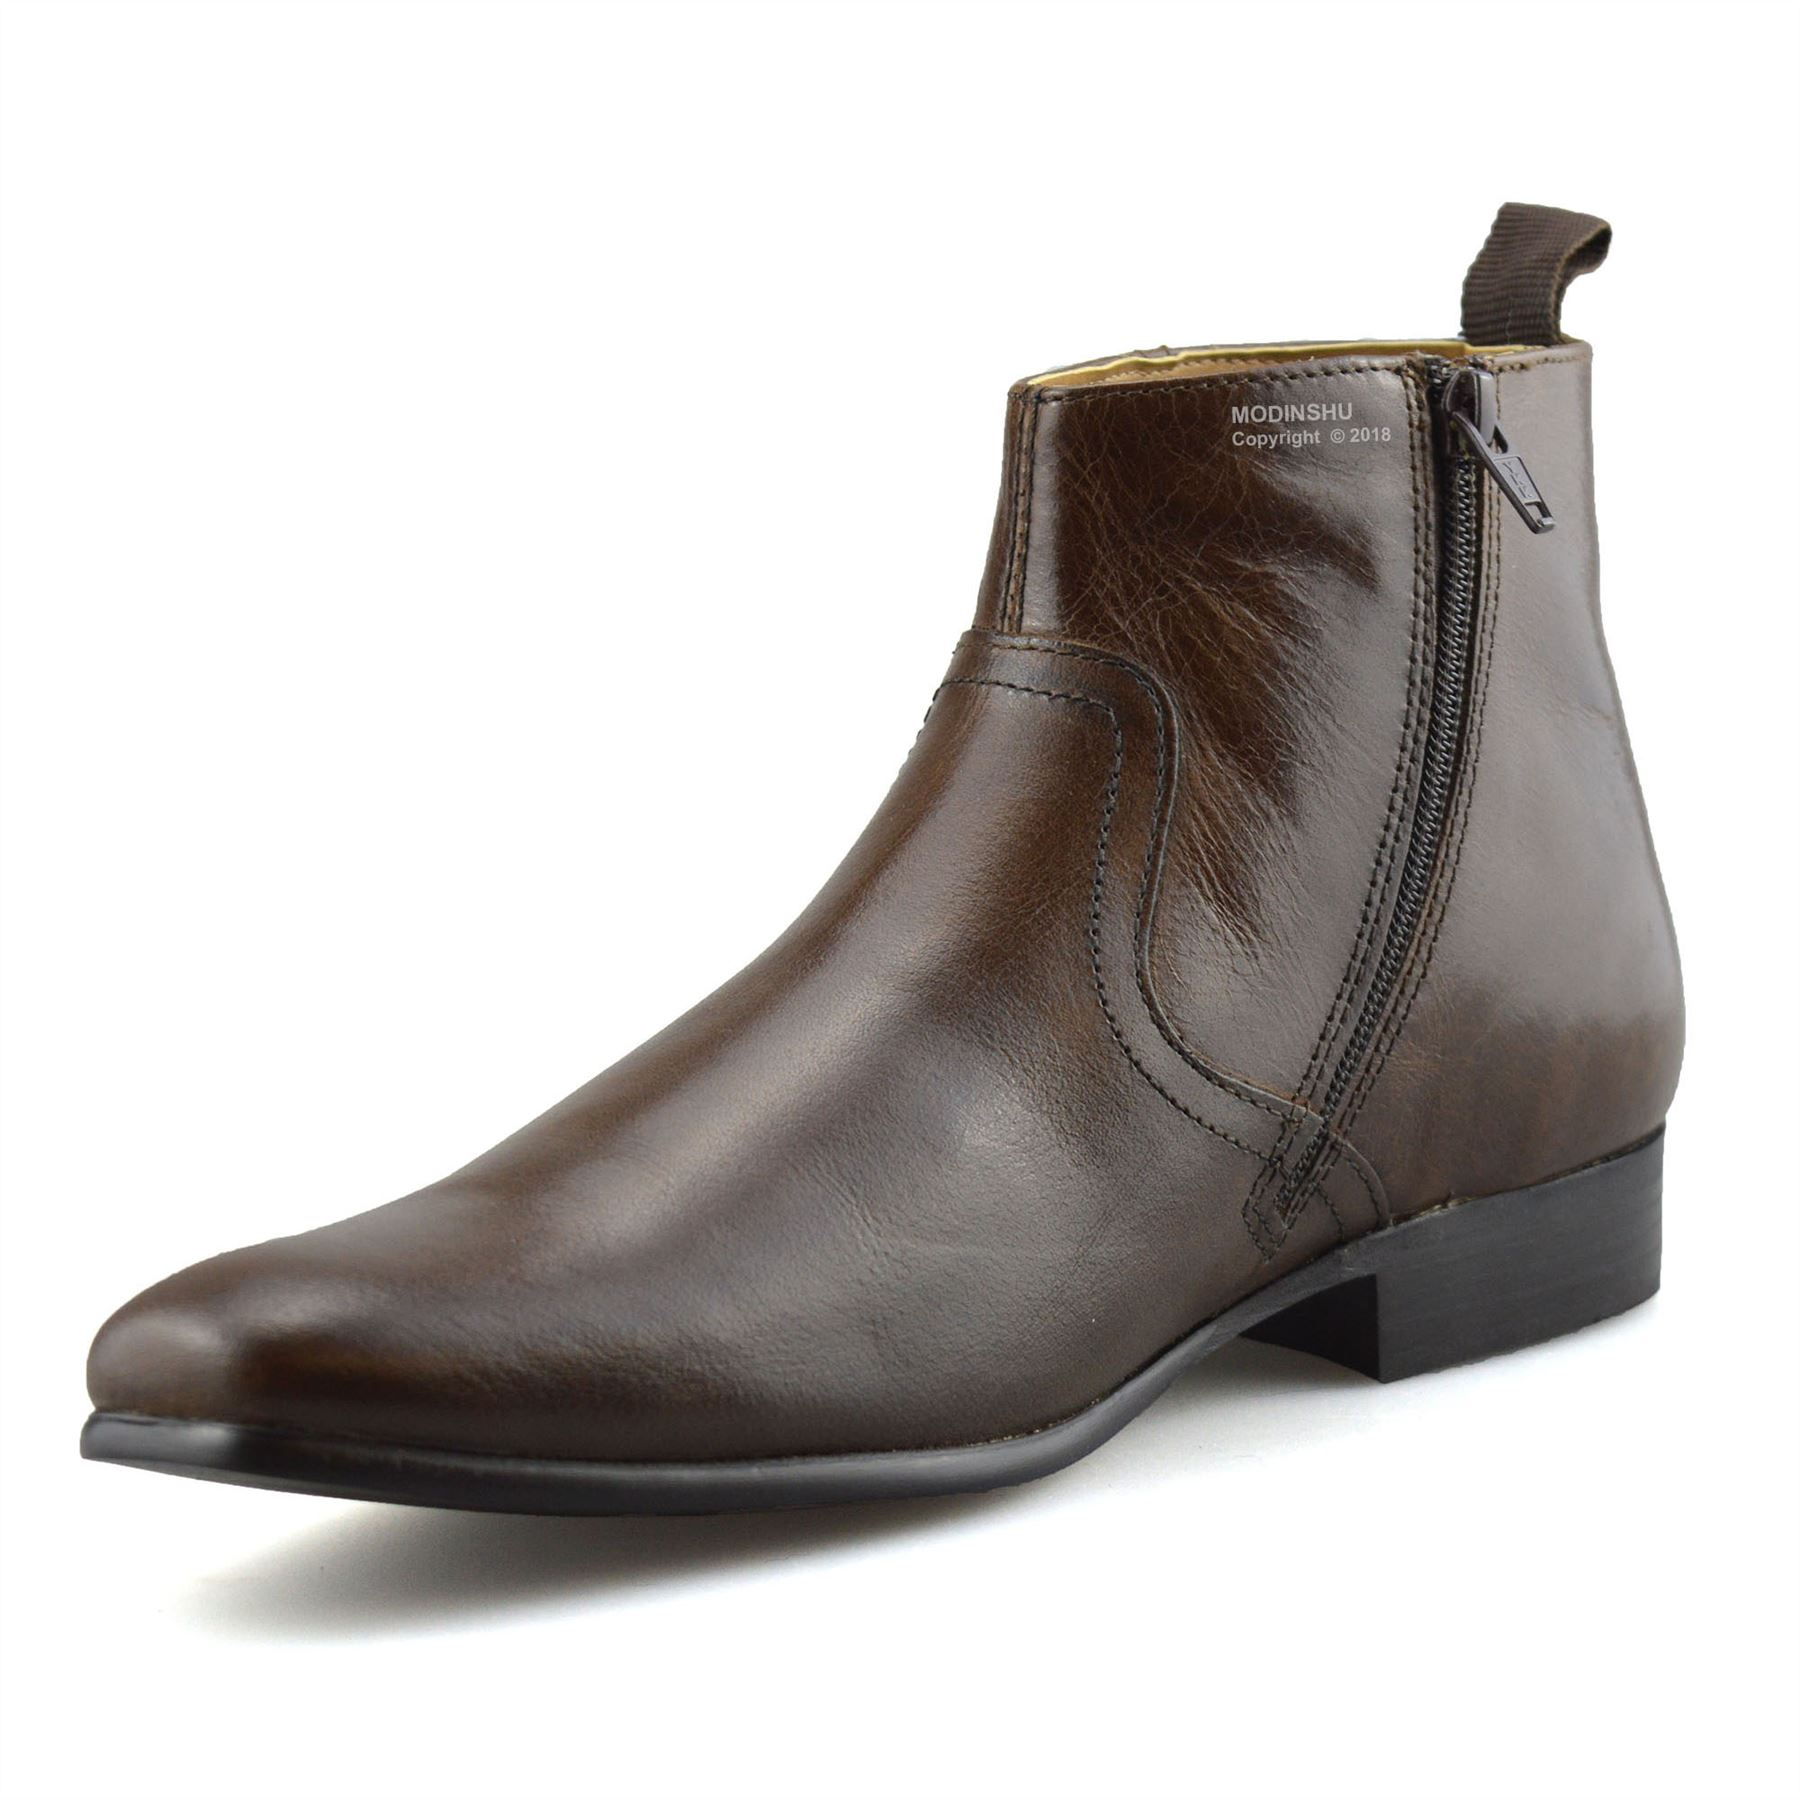 Mens-New-Leather-Zip-Up-Smart-Formal-Chelsea-Dealer-Work-Ankle-Boots-Shoes-Size thumbnail 19